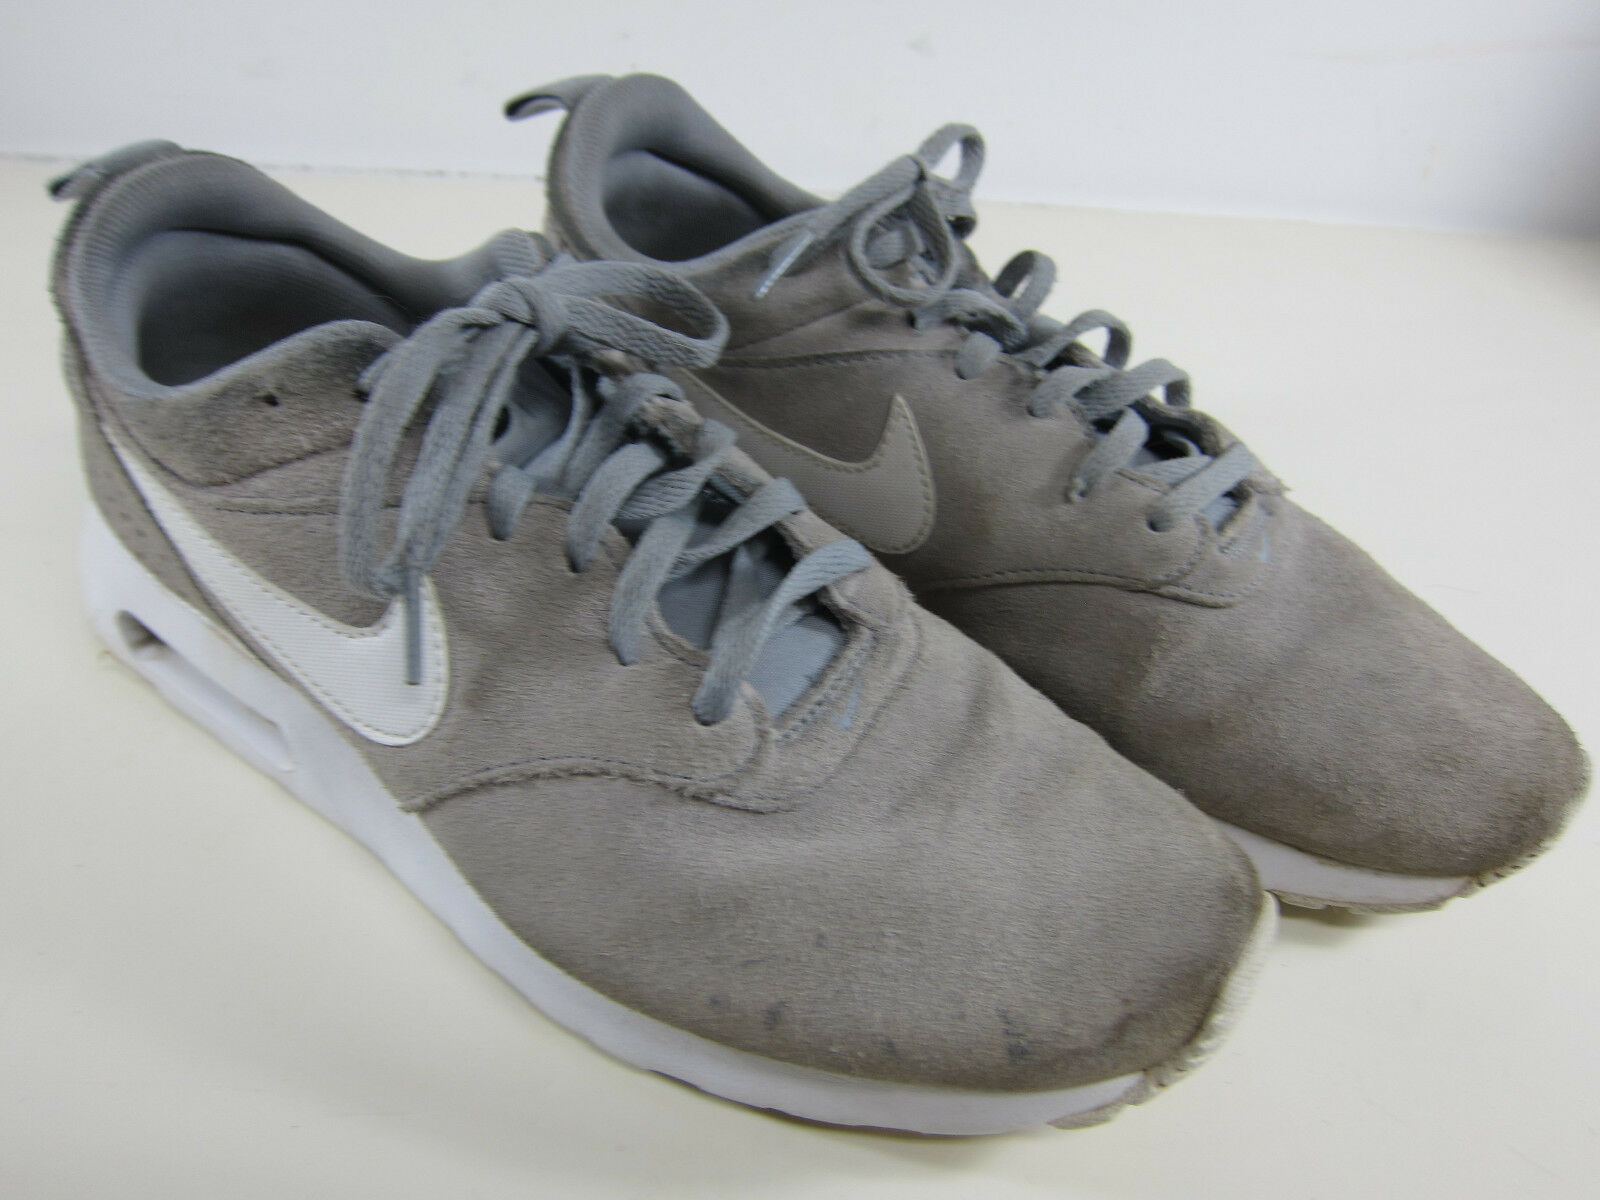 Nike Air Max Tavas Men's Comfortable Cheap and beautiful fashion